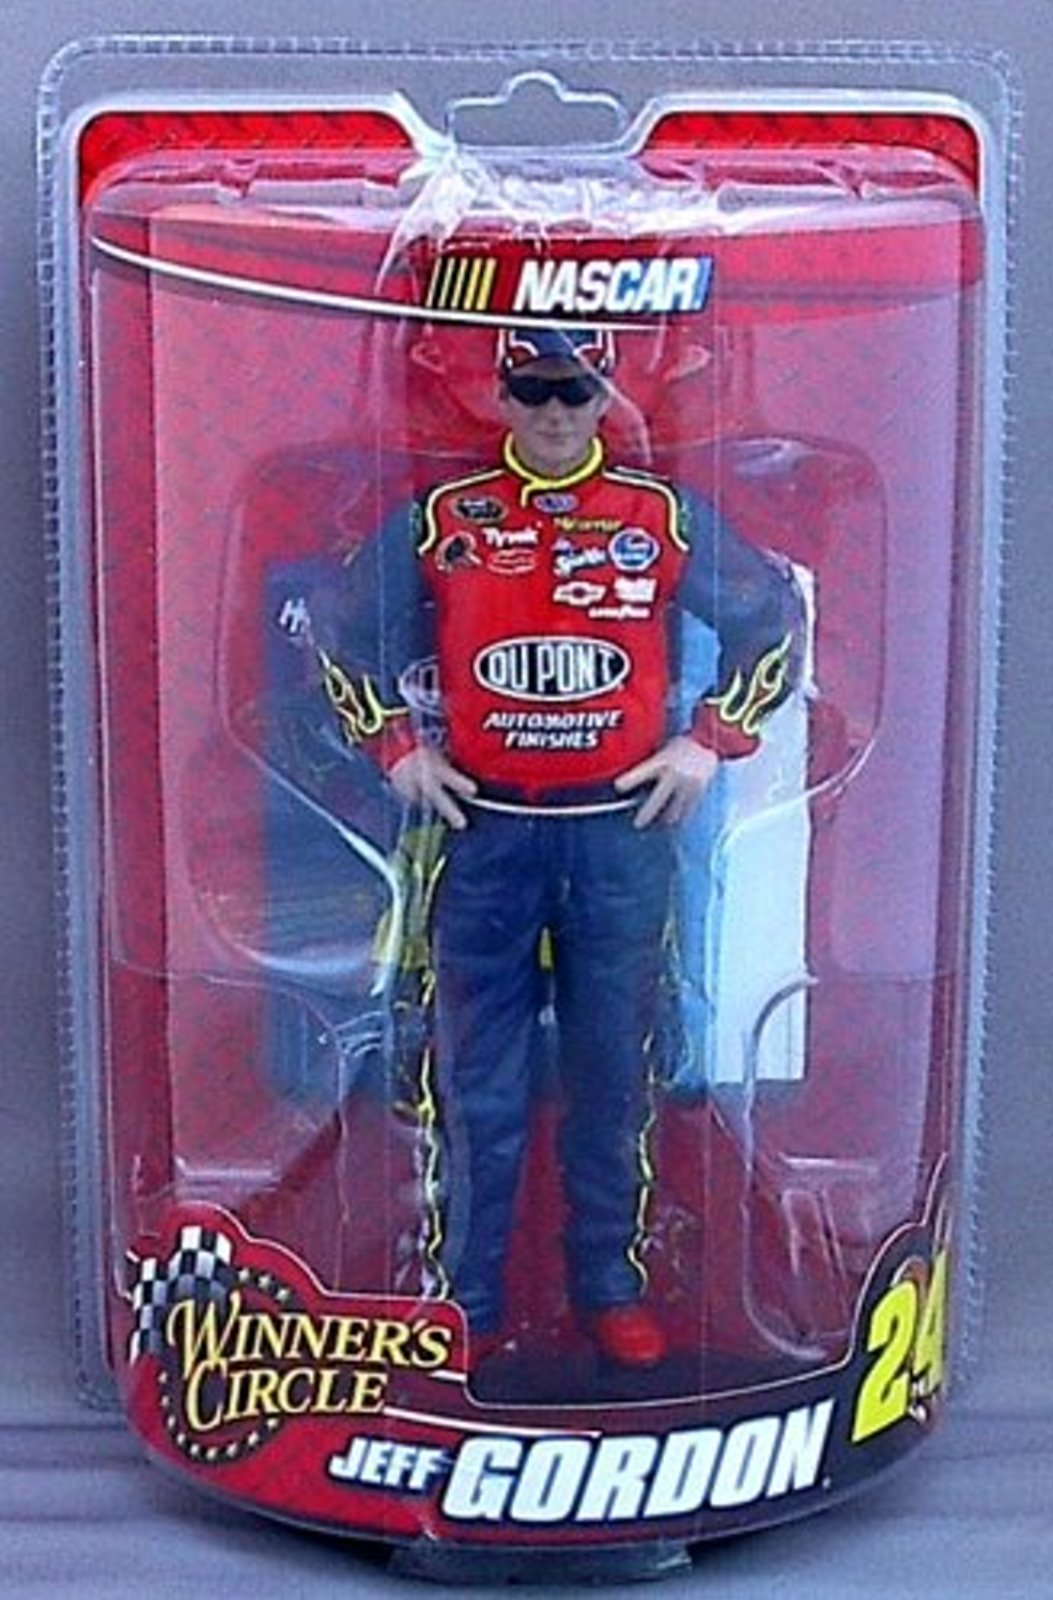 Jeff Gordon #24 Dupont Winners Circle Figure